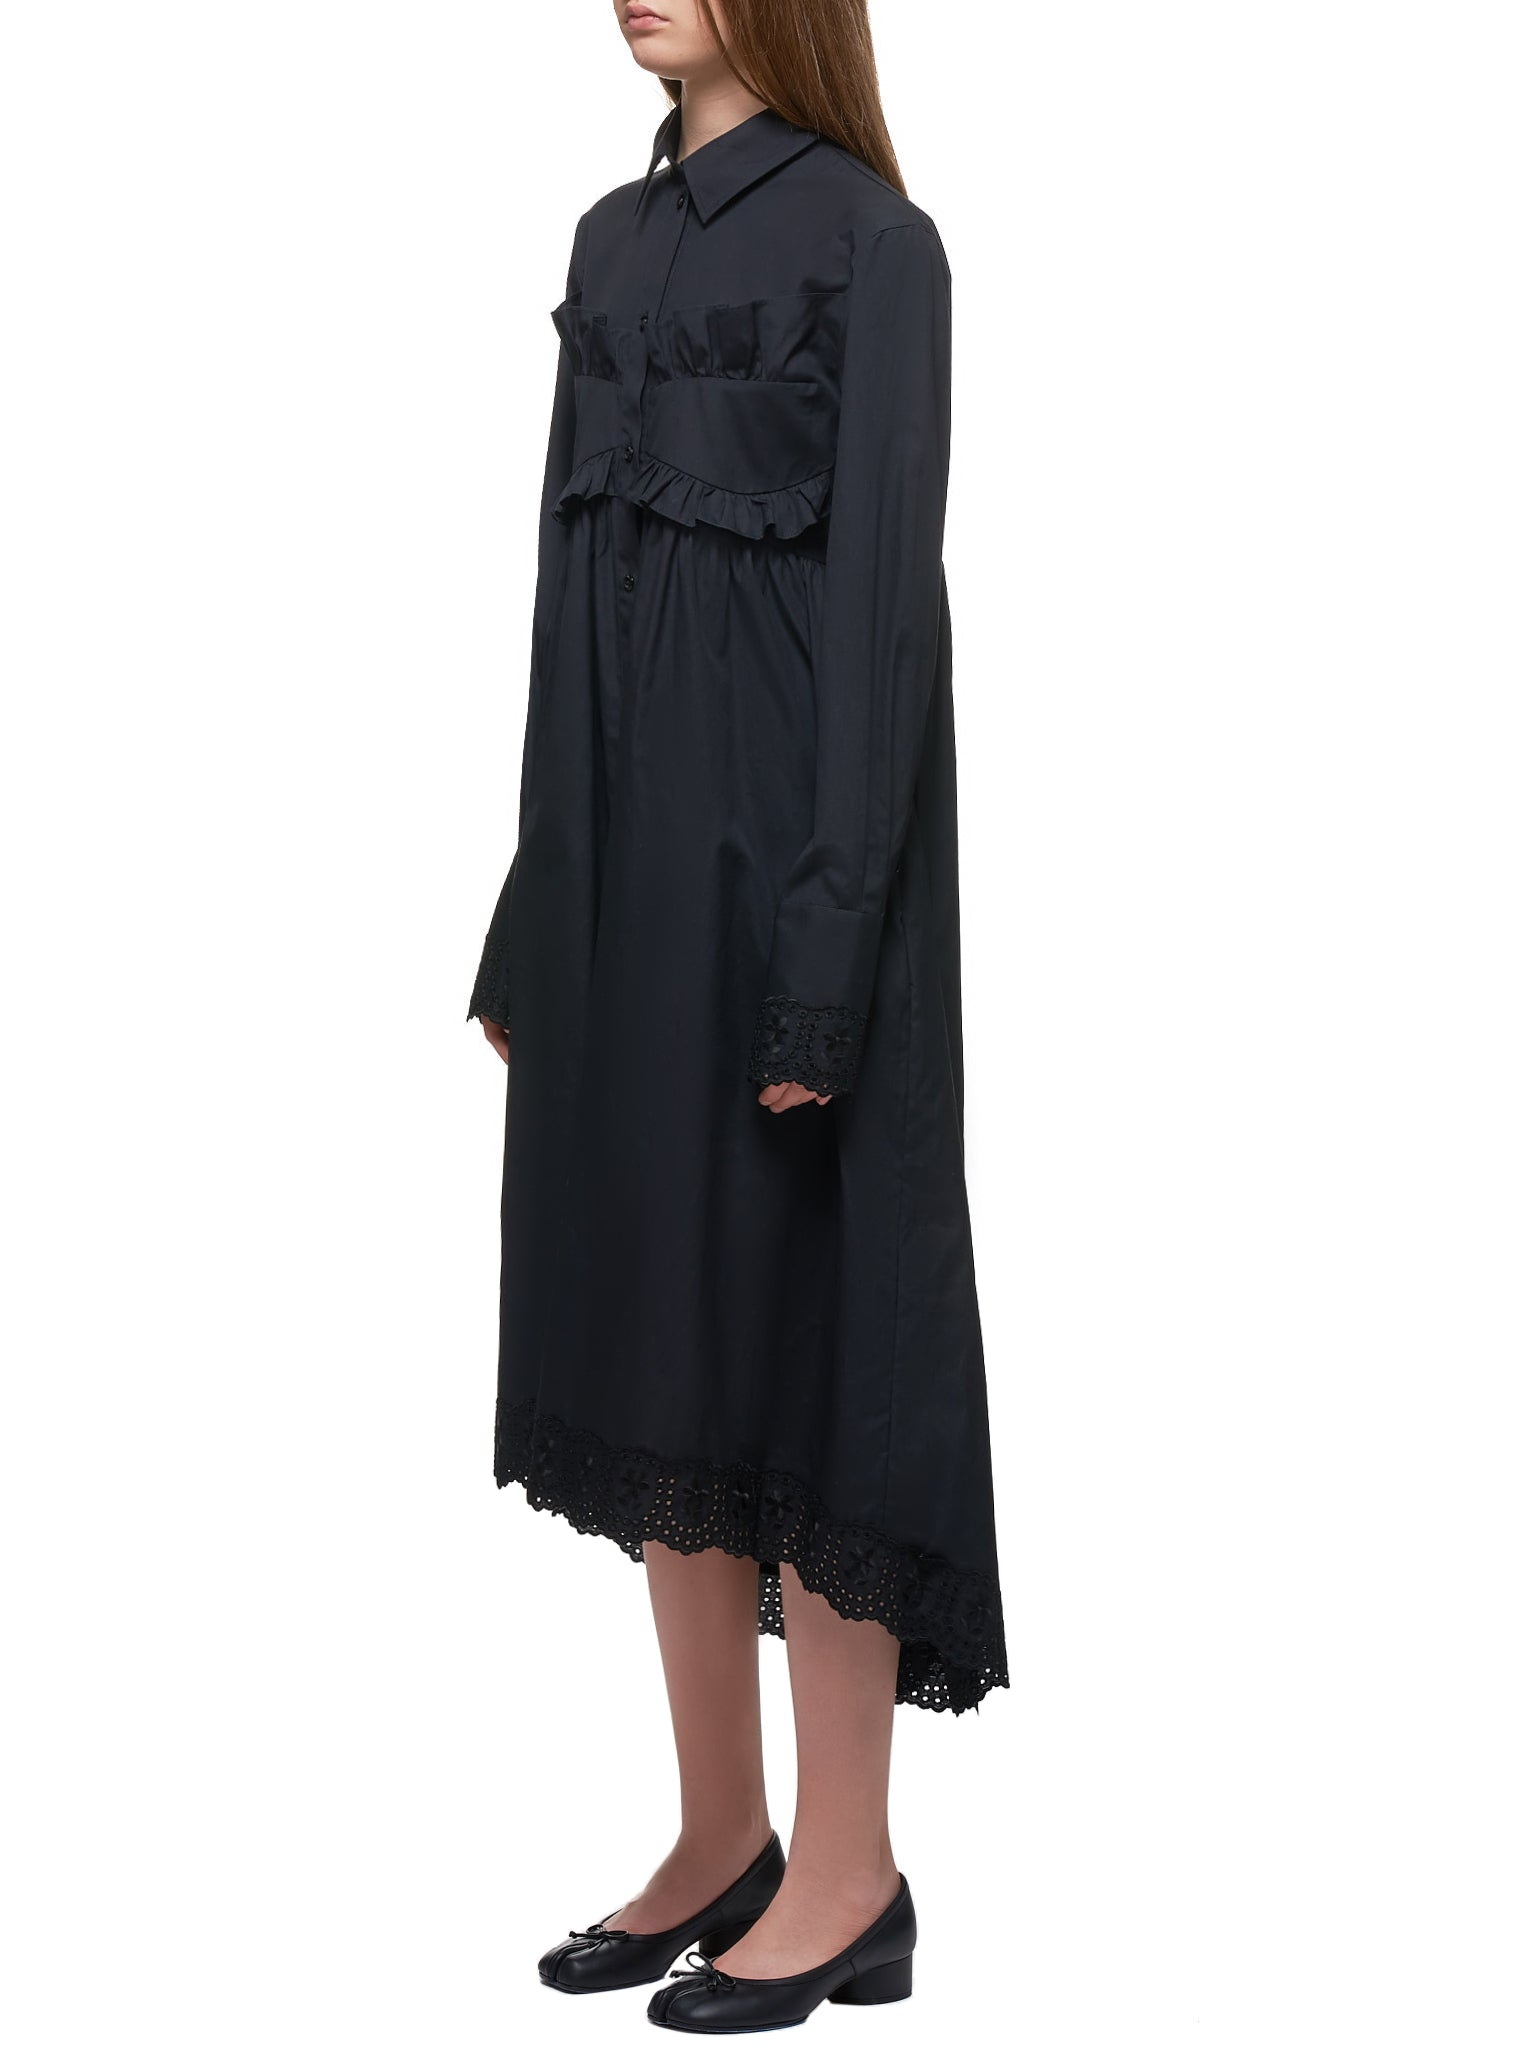 Simone Rocha Dress - Hlorenzo Side